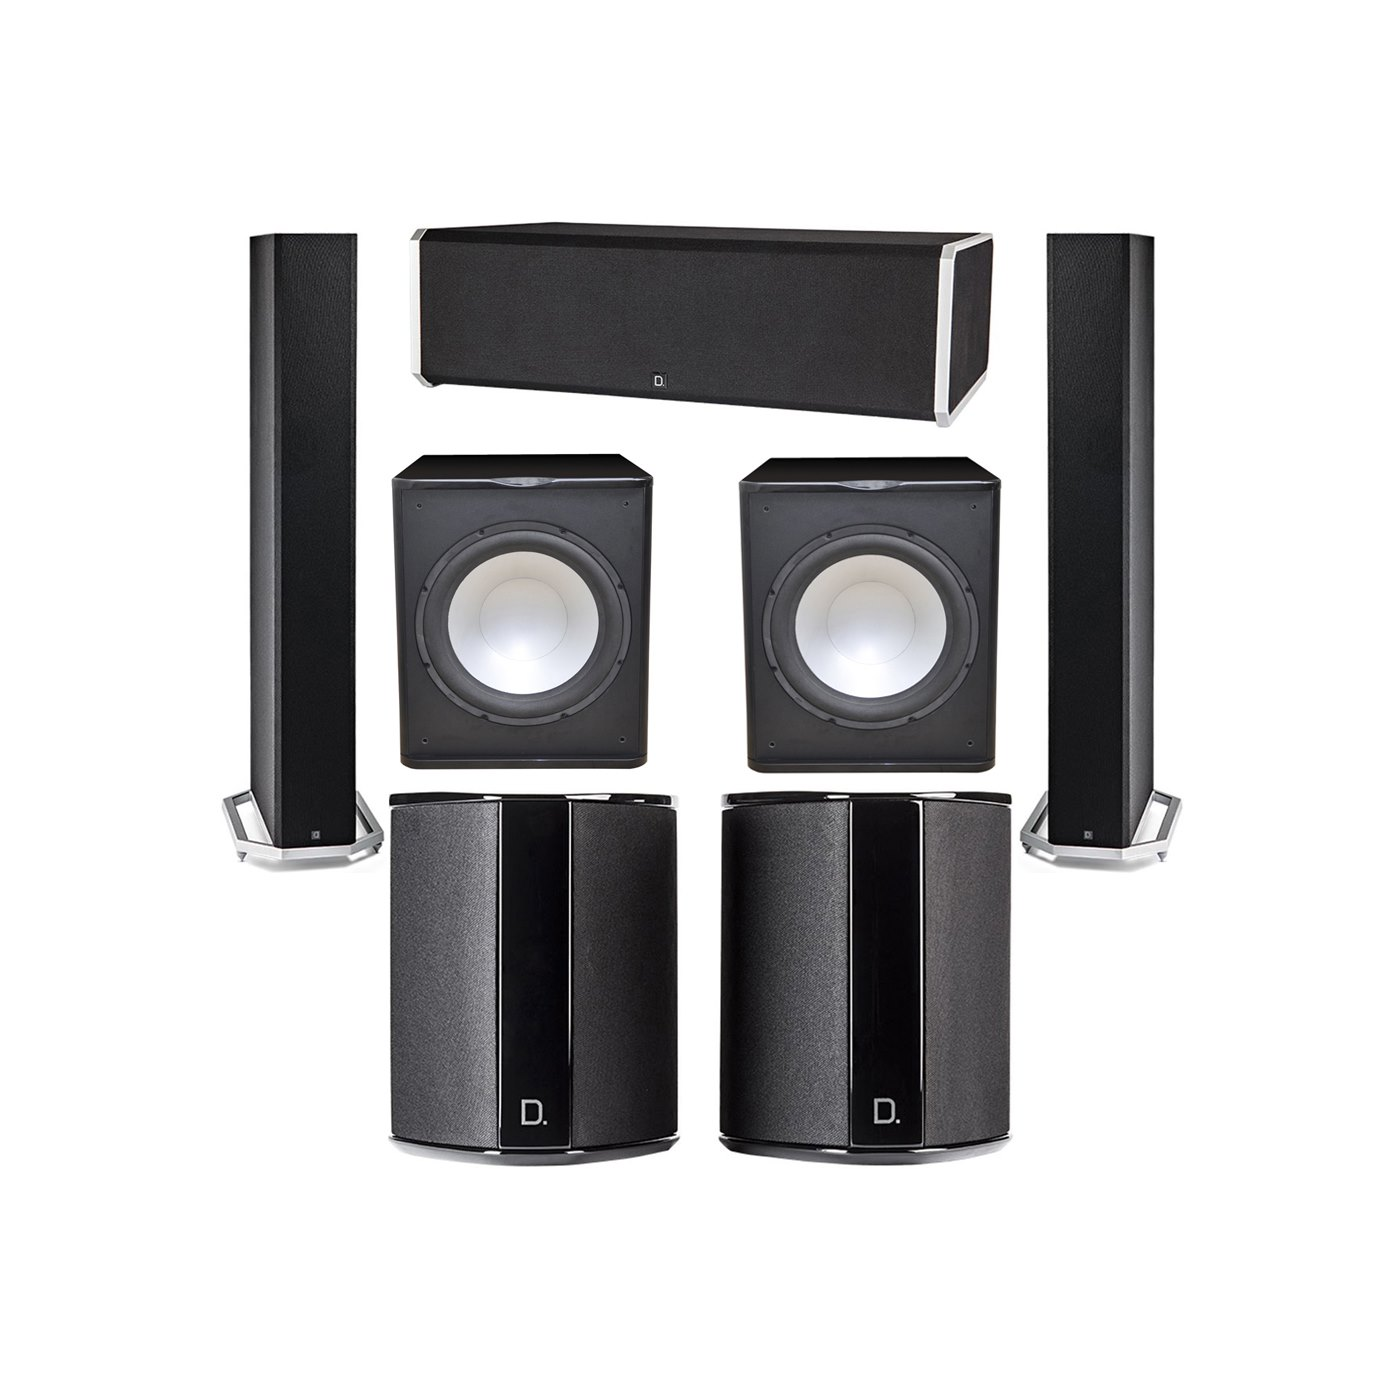 Definitive Technology 5.2 System with 2 BP9060 Tower Speakers, 1 CS9080 Center Channel Speaker, 2 SR9040 Surround Speaker, 2 Premier Acoustic PA-150 Subwoofer